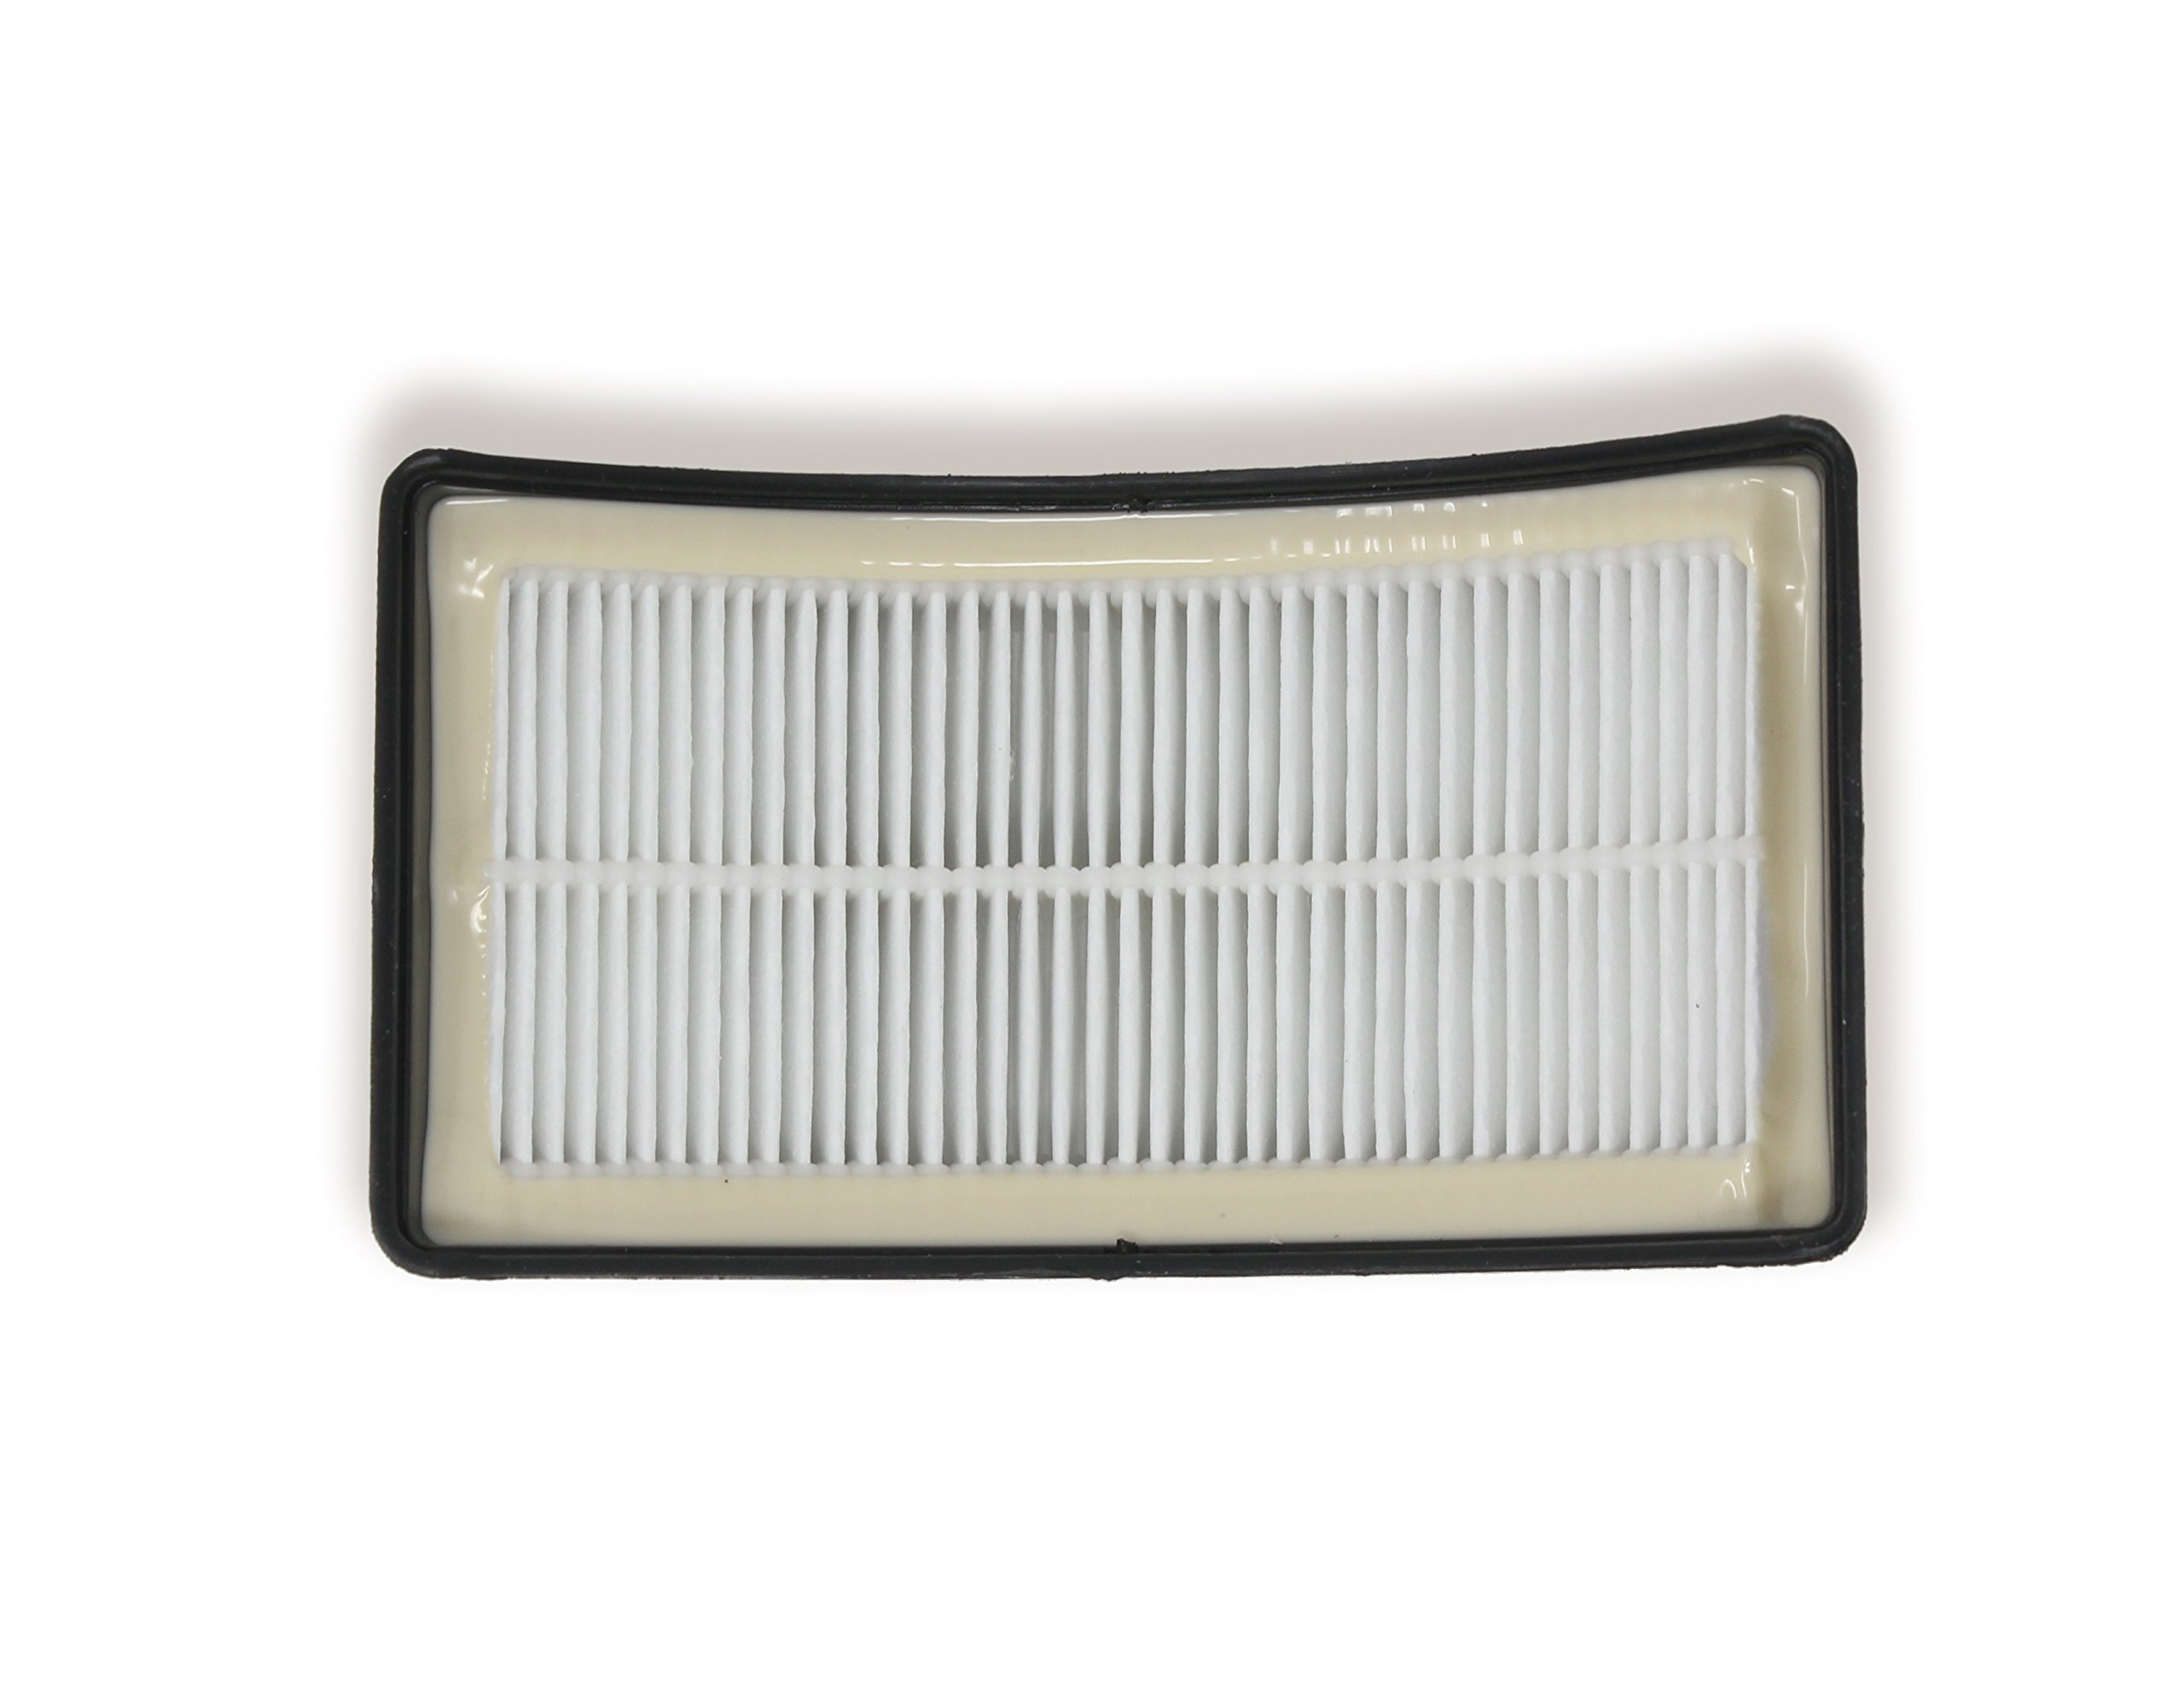 Fette Filter - Vacuum Filters Compatible with Bissell Powerlifter Pet Rewind Vacuum 1792. Compare to Part #1603437 & 1604130. 2-Pack Combo Pack